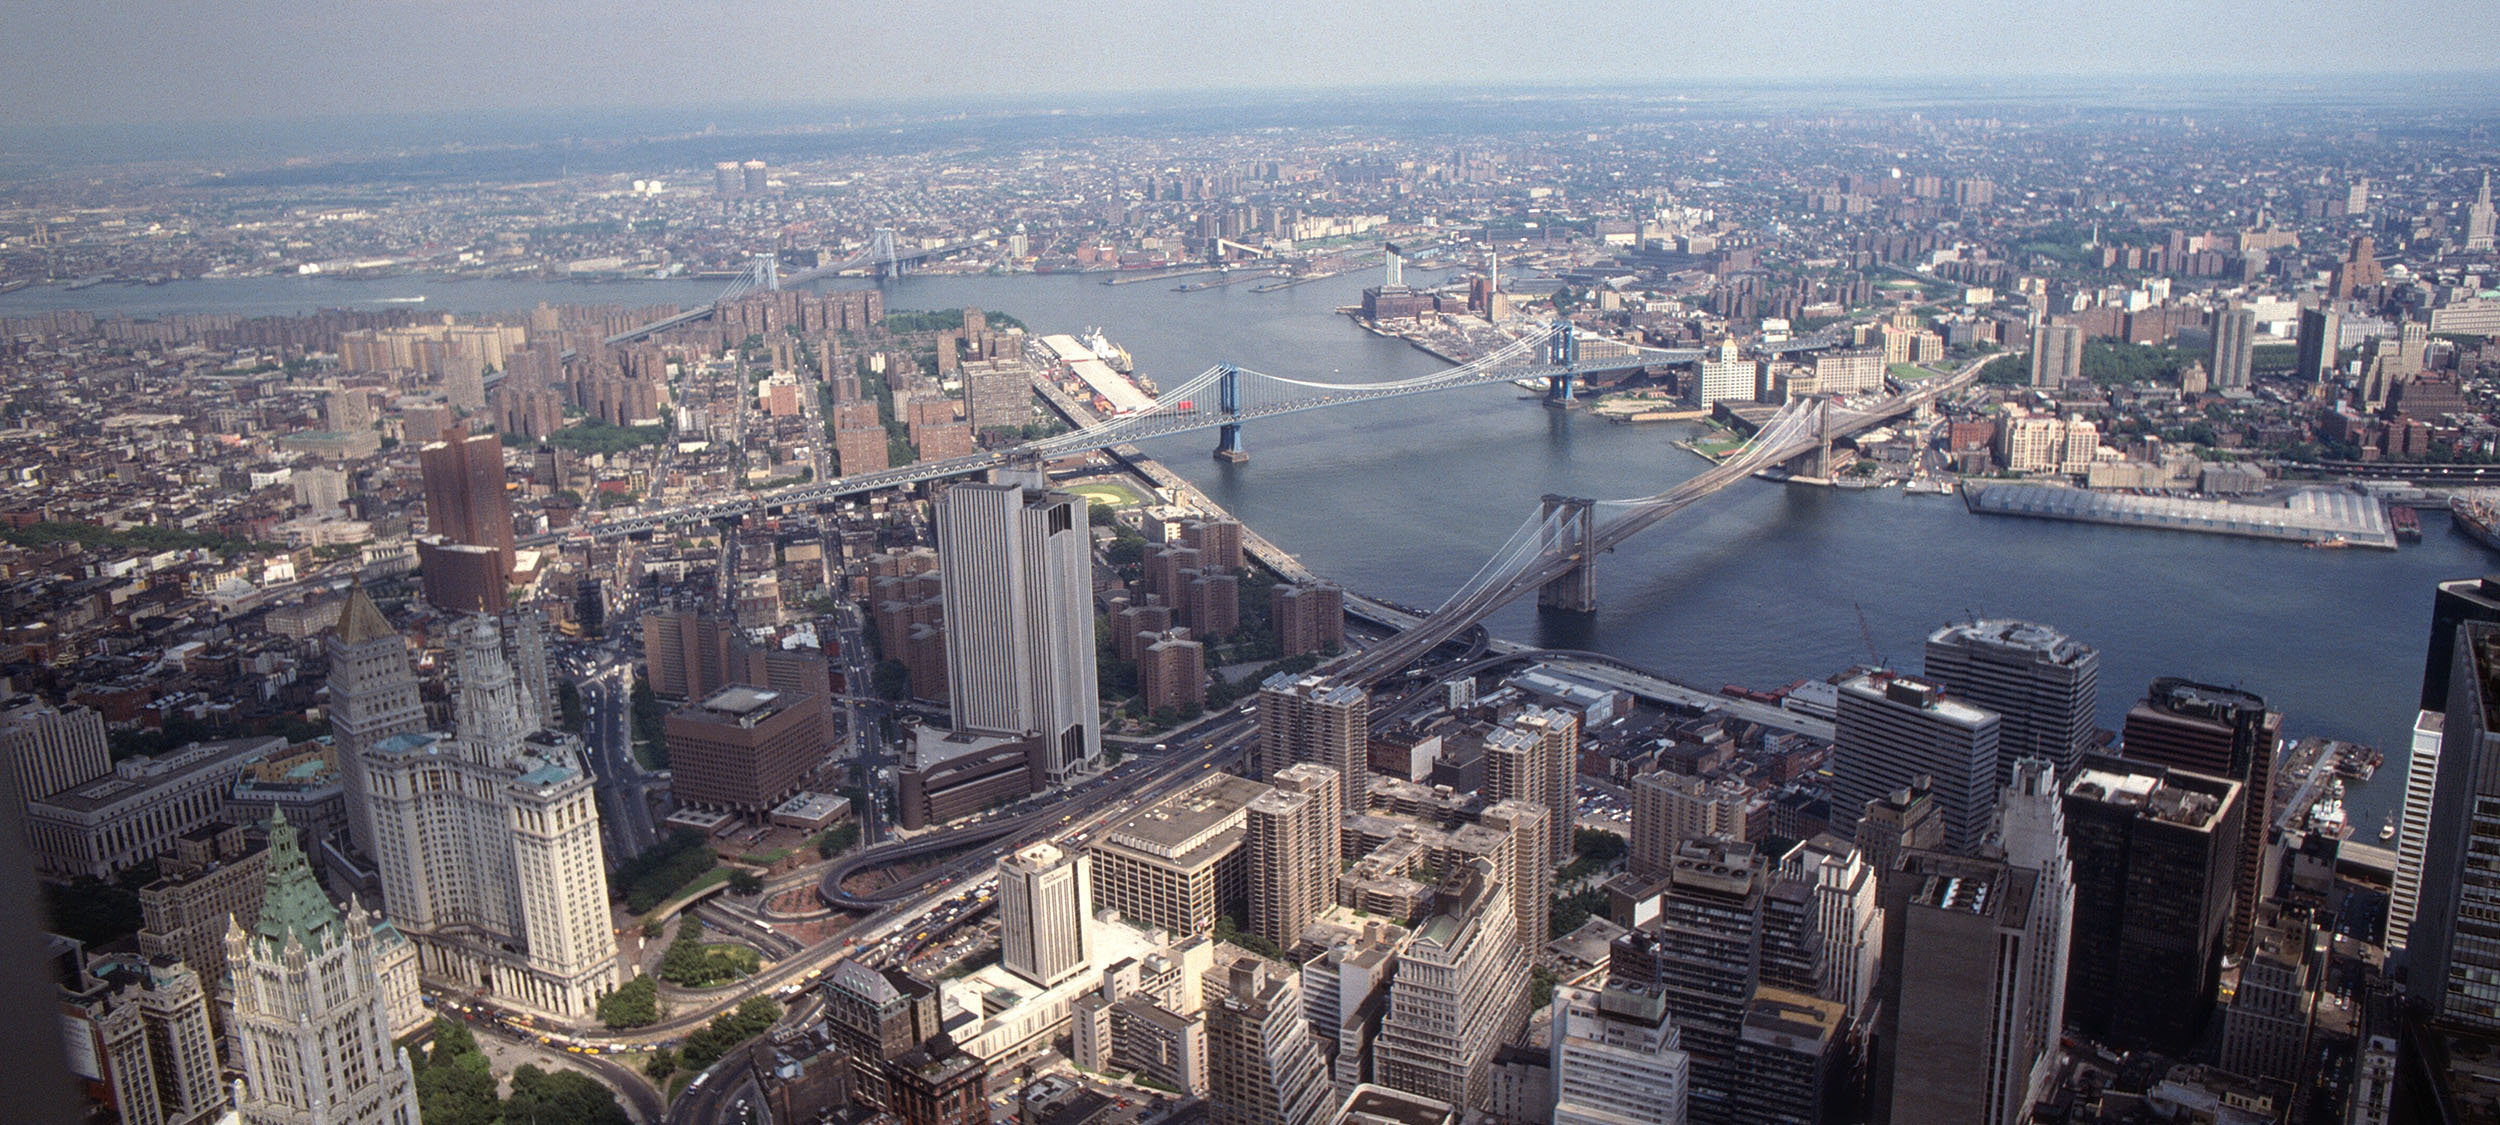 East_River_and_the_Brooklyn_Bridge_from_2WTC